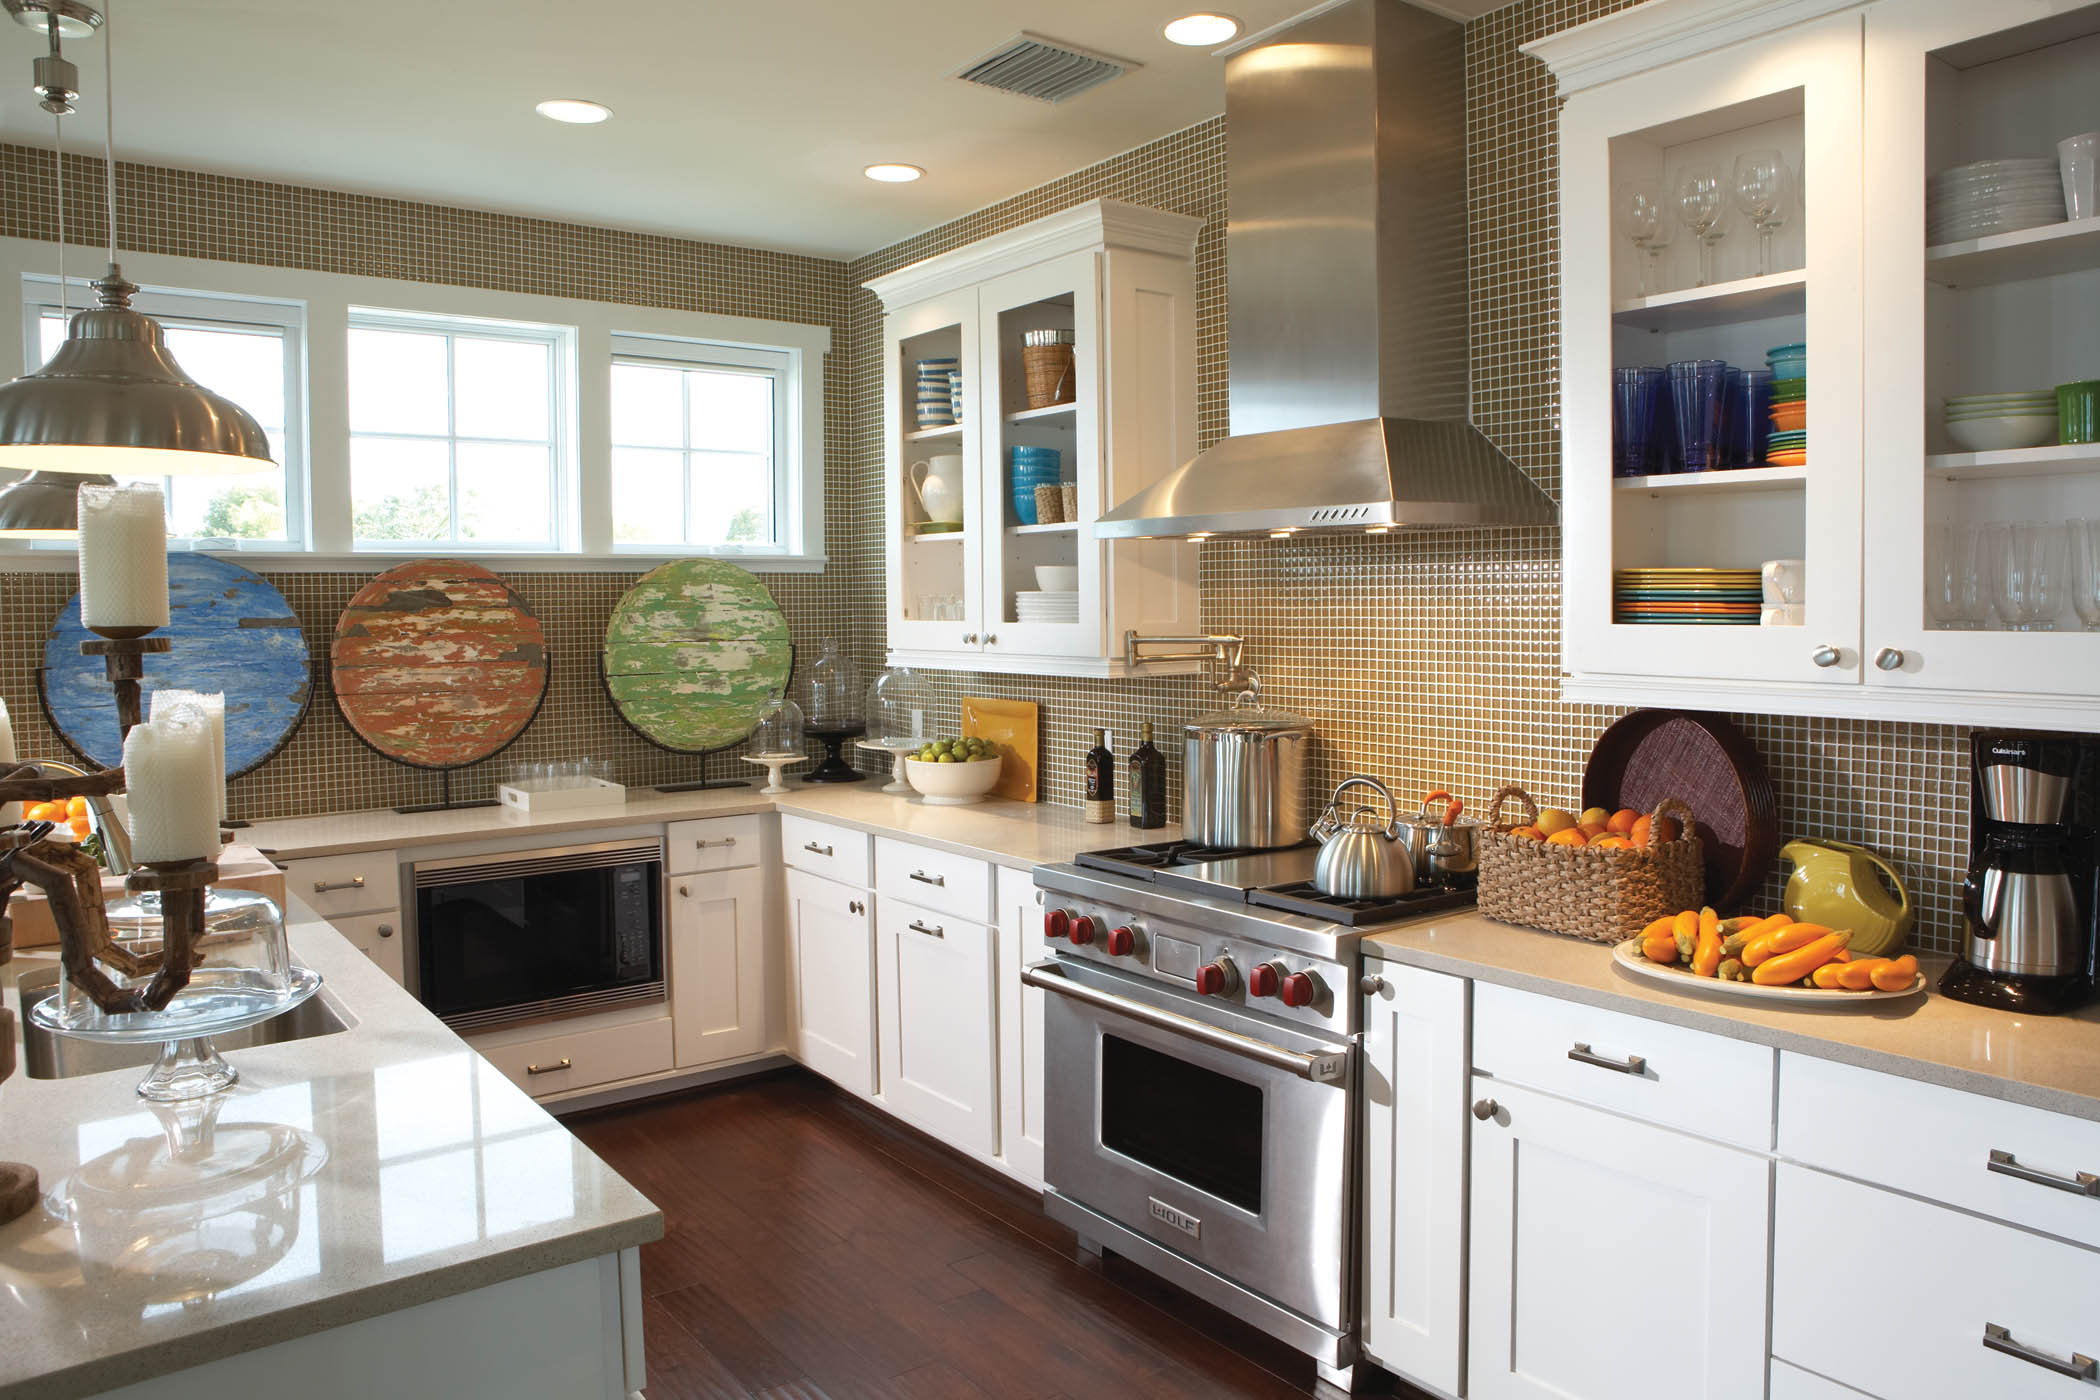 The simplistic cabinet doors and mix of design details blend to create a balanced transitional kitchen. Accessories such as the stainless light and candelabra add contemporary and traditional details to the kitchen.